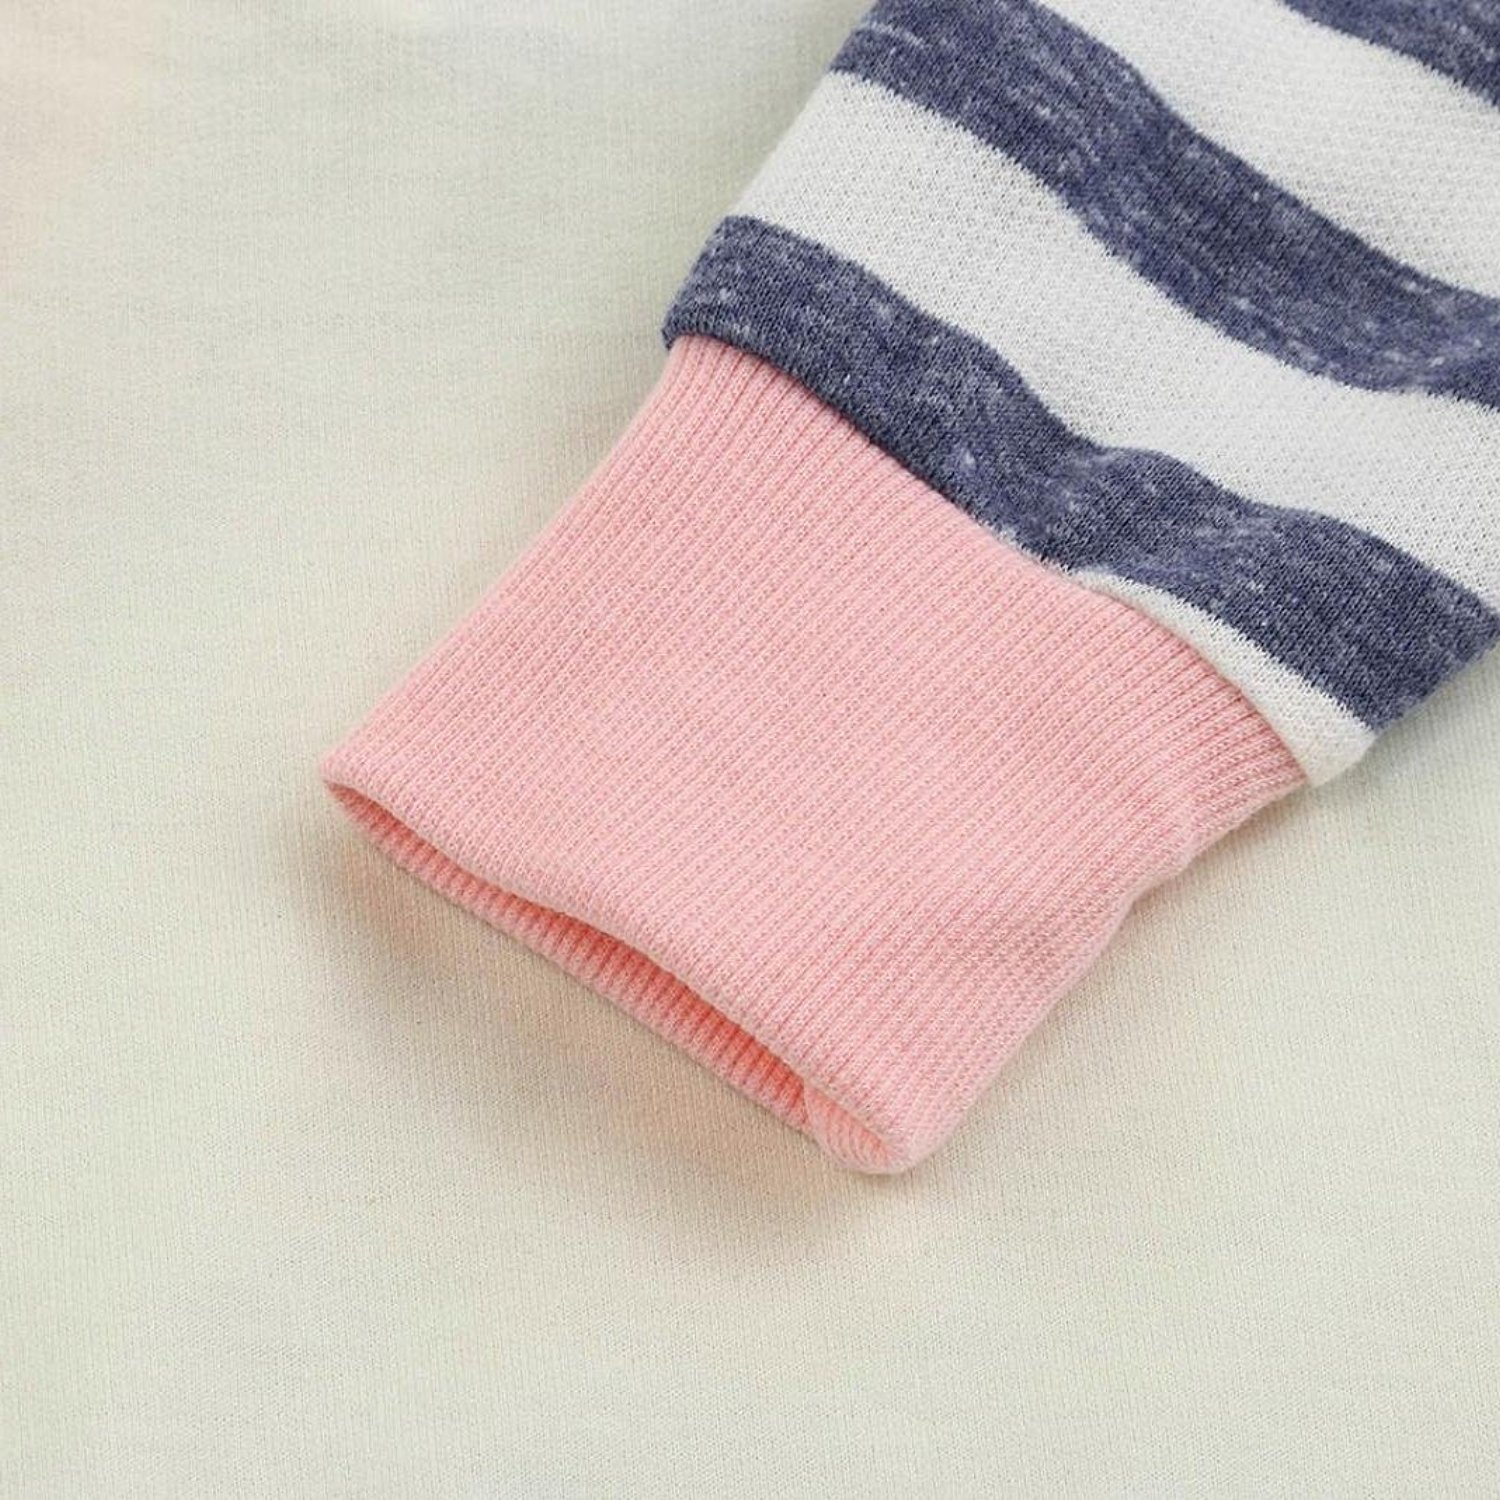 Baby Girls' Clothes Long Sleeve Hoodie Tops, Striped Pants+Headband Outfits Set (18-24 Months) by TUEMOS (Image #5)